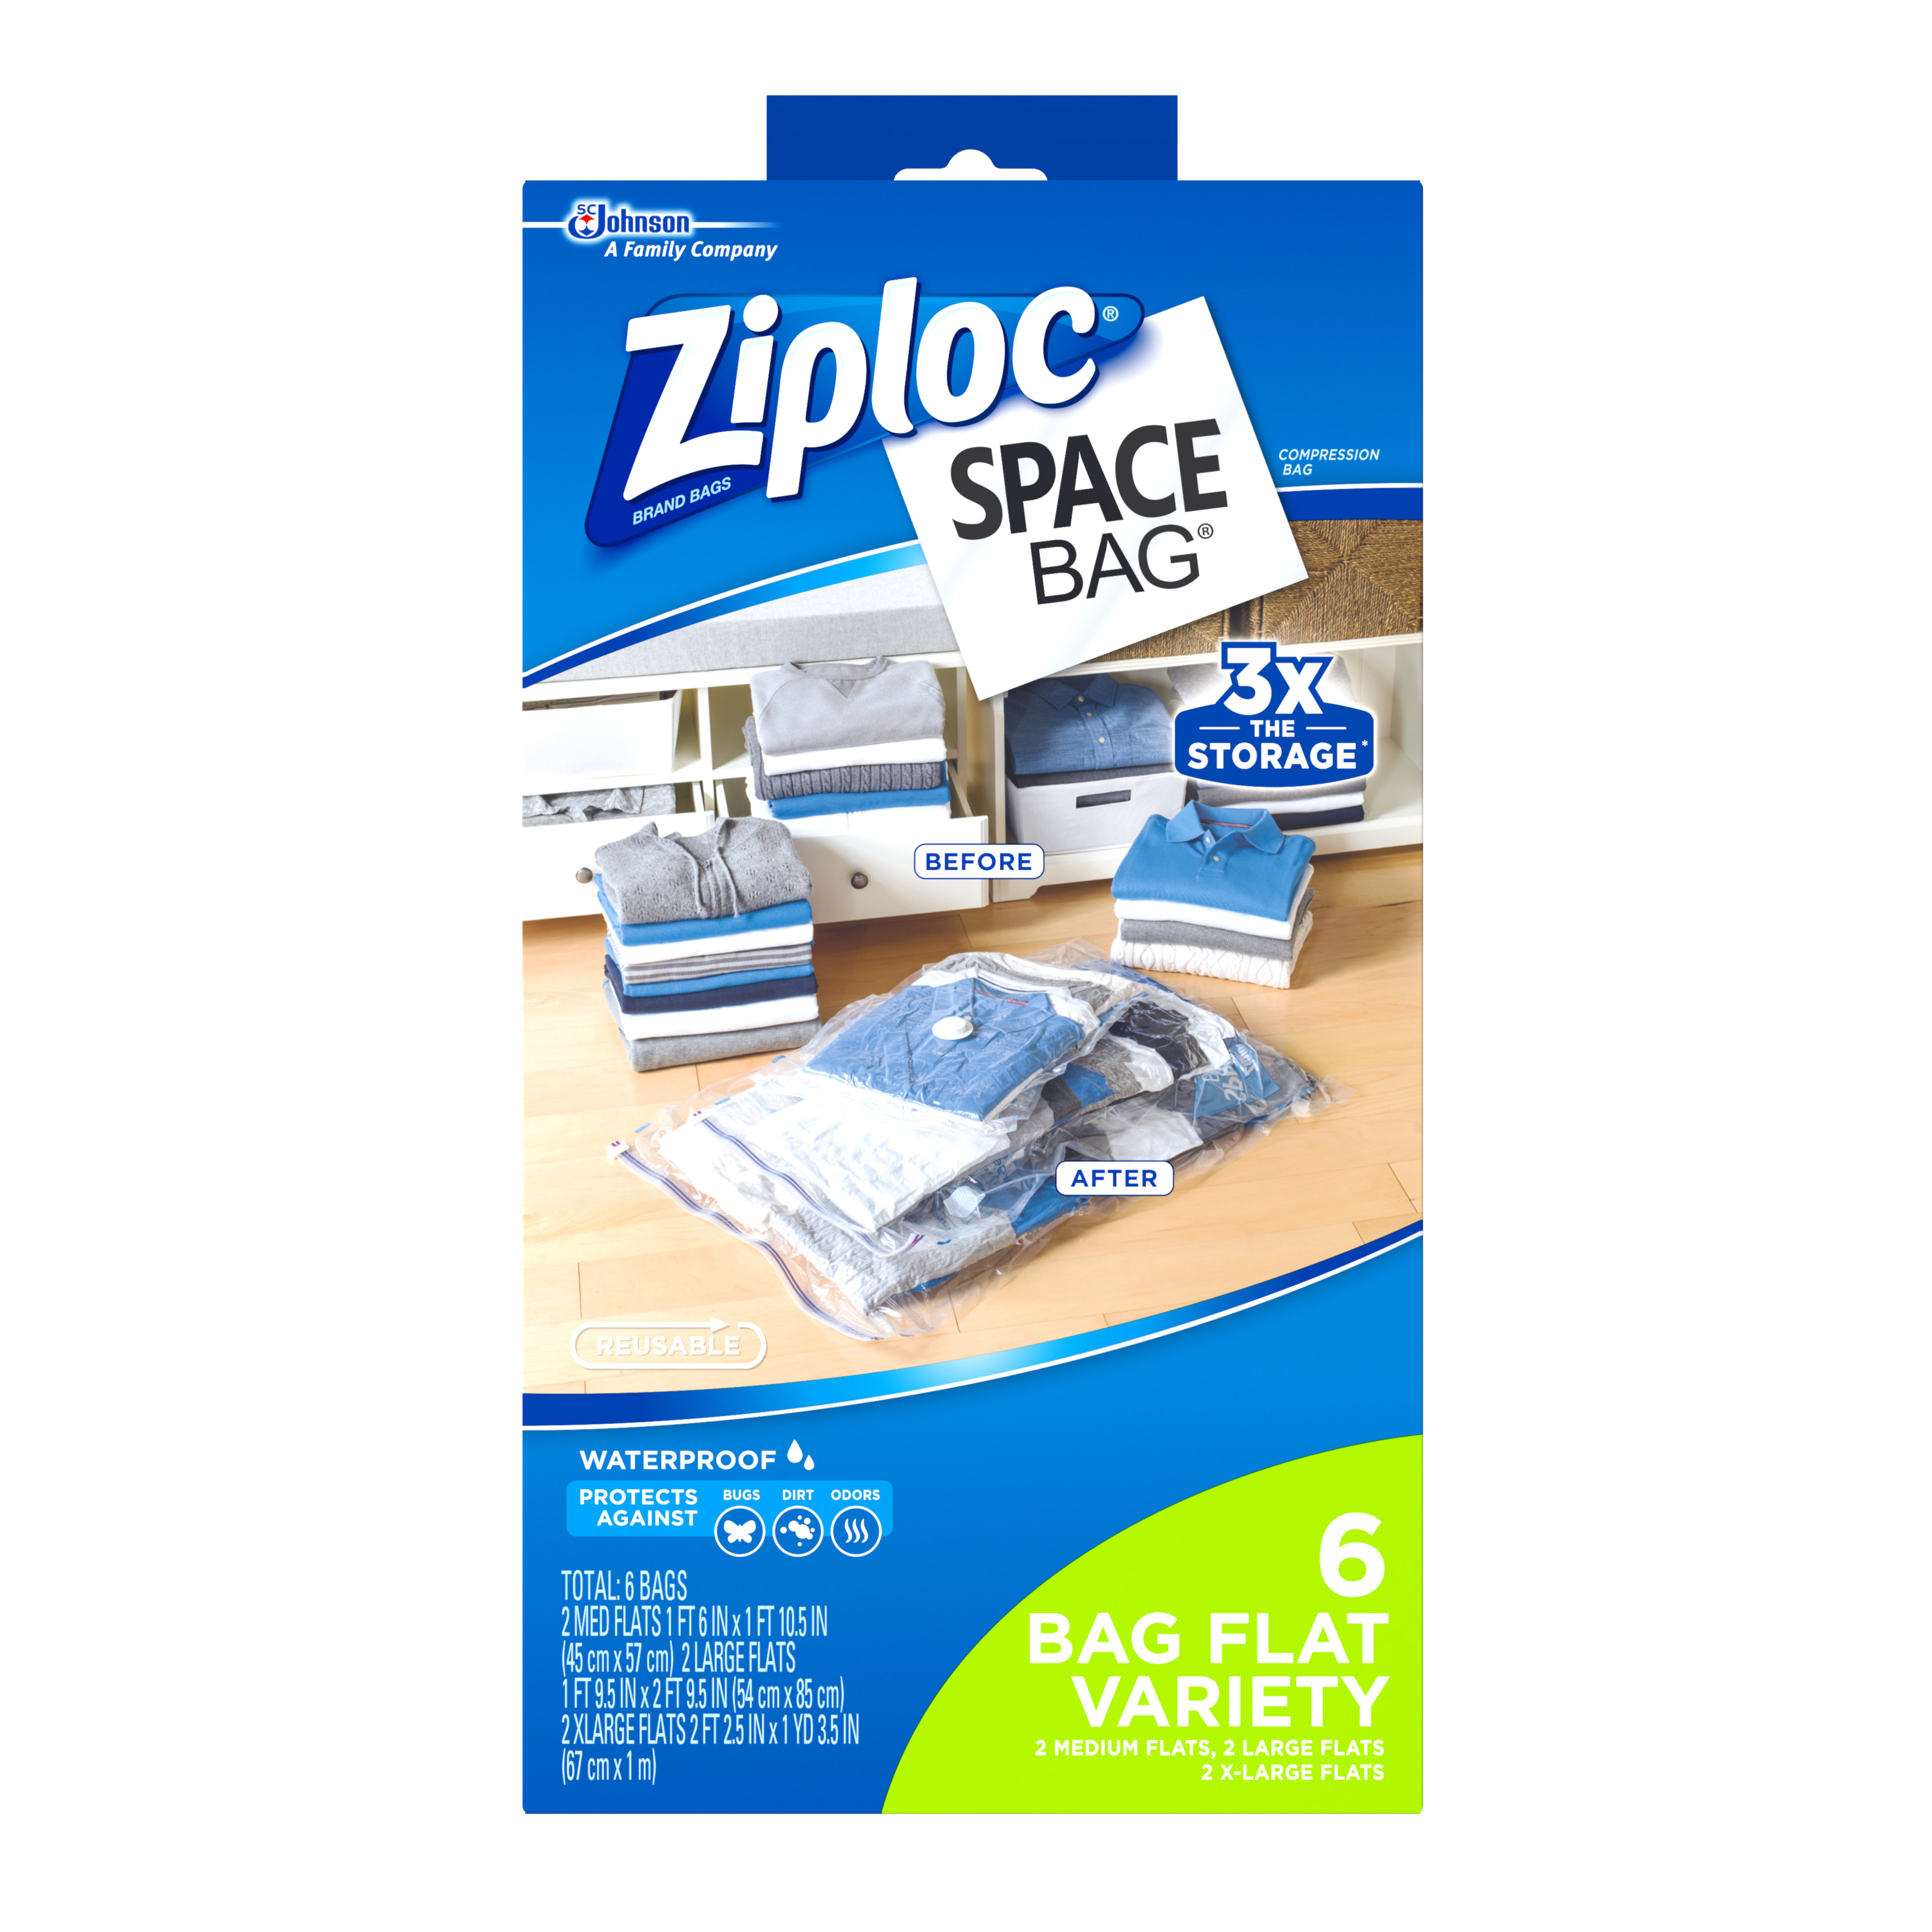 Ziploc Space Bag 6 Count Vacuum Bag: 2 Medium, 2 Large, 2 Extra Large